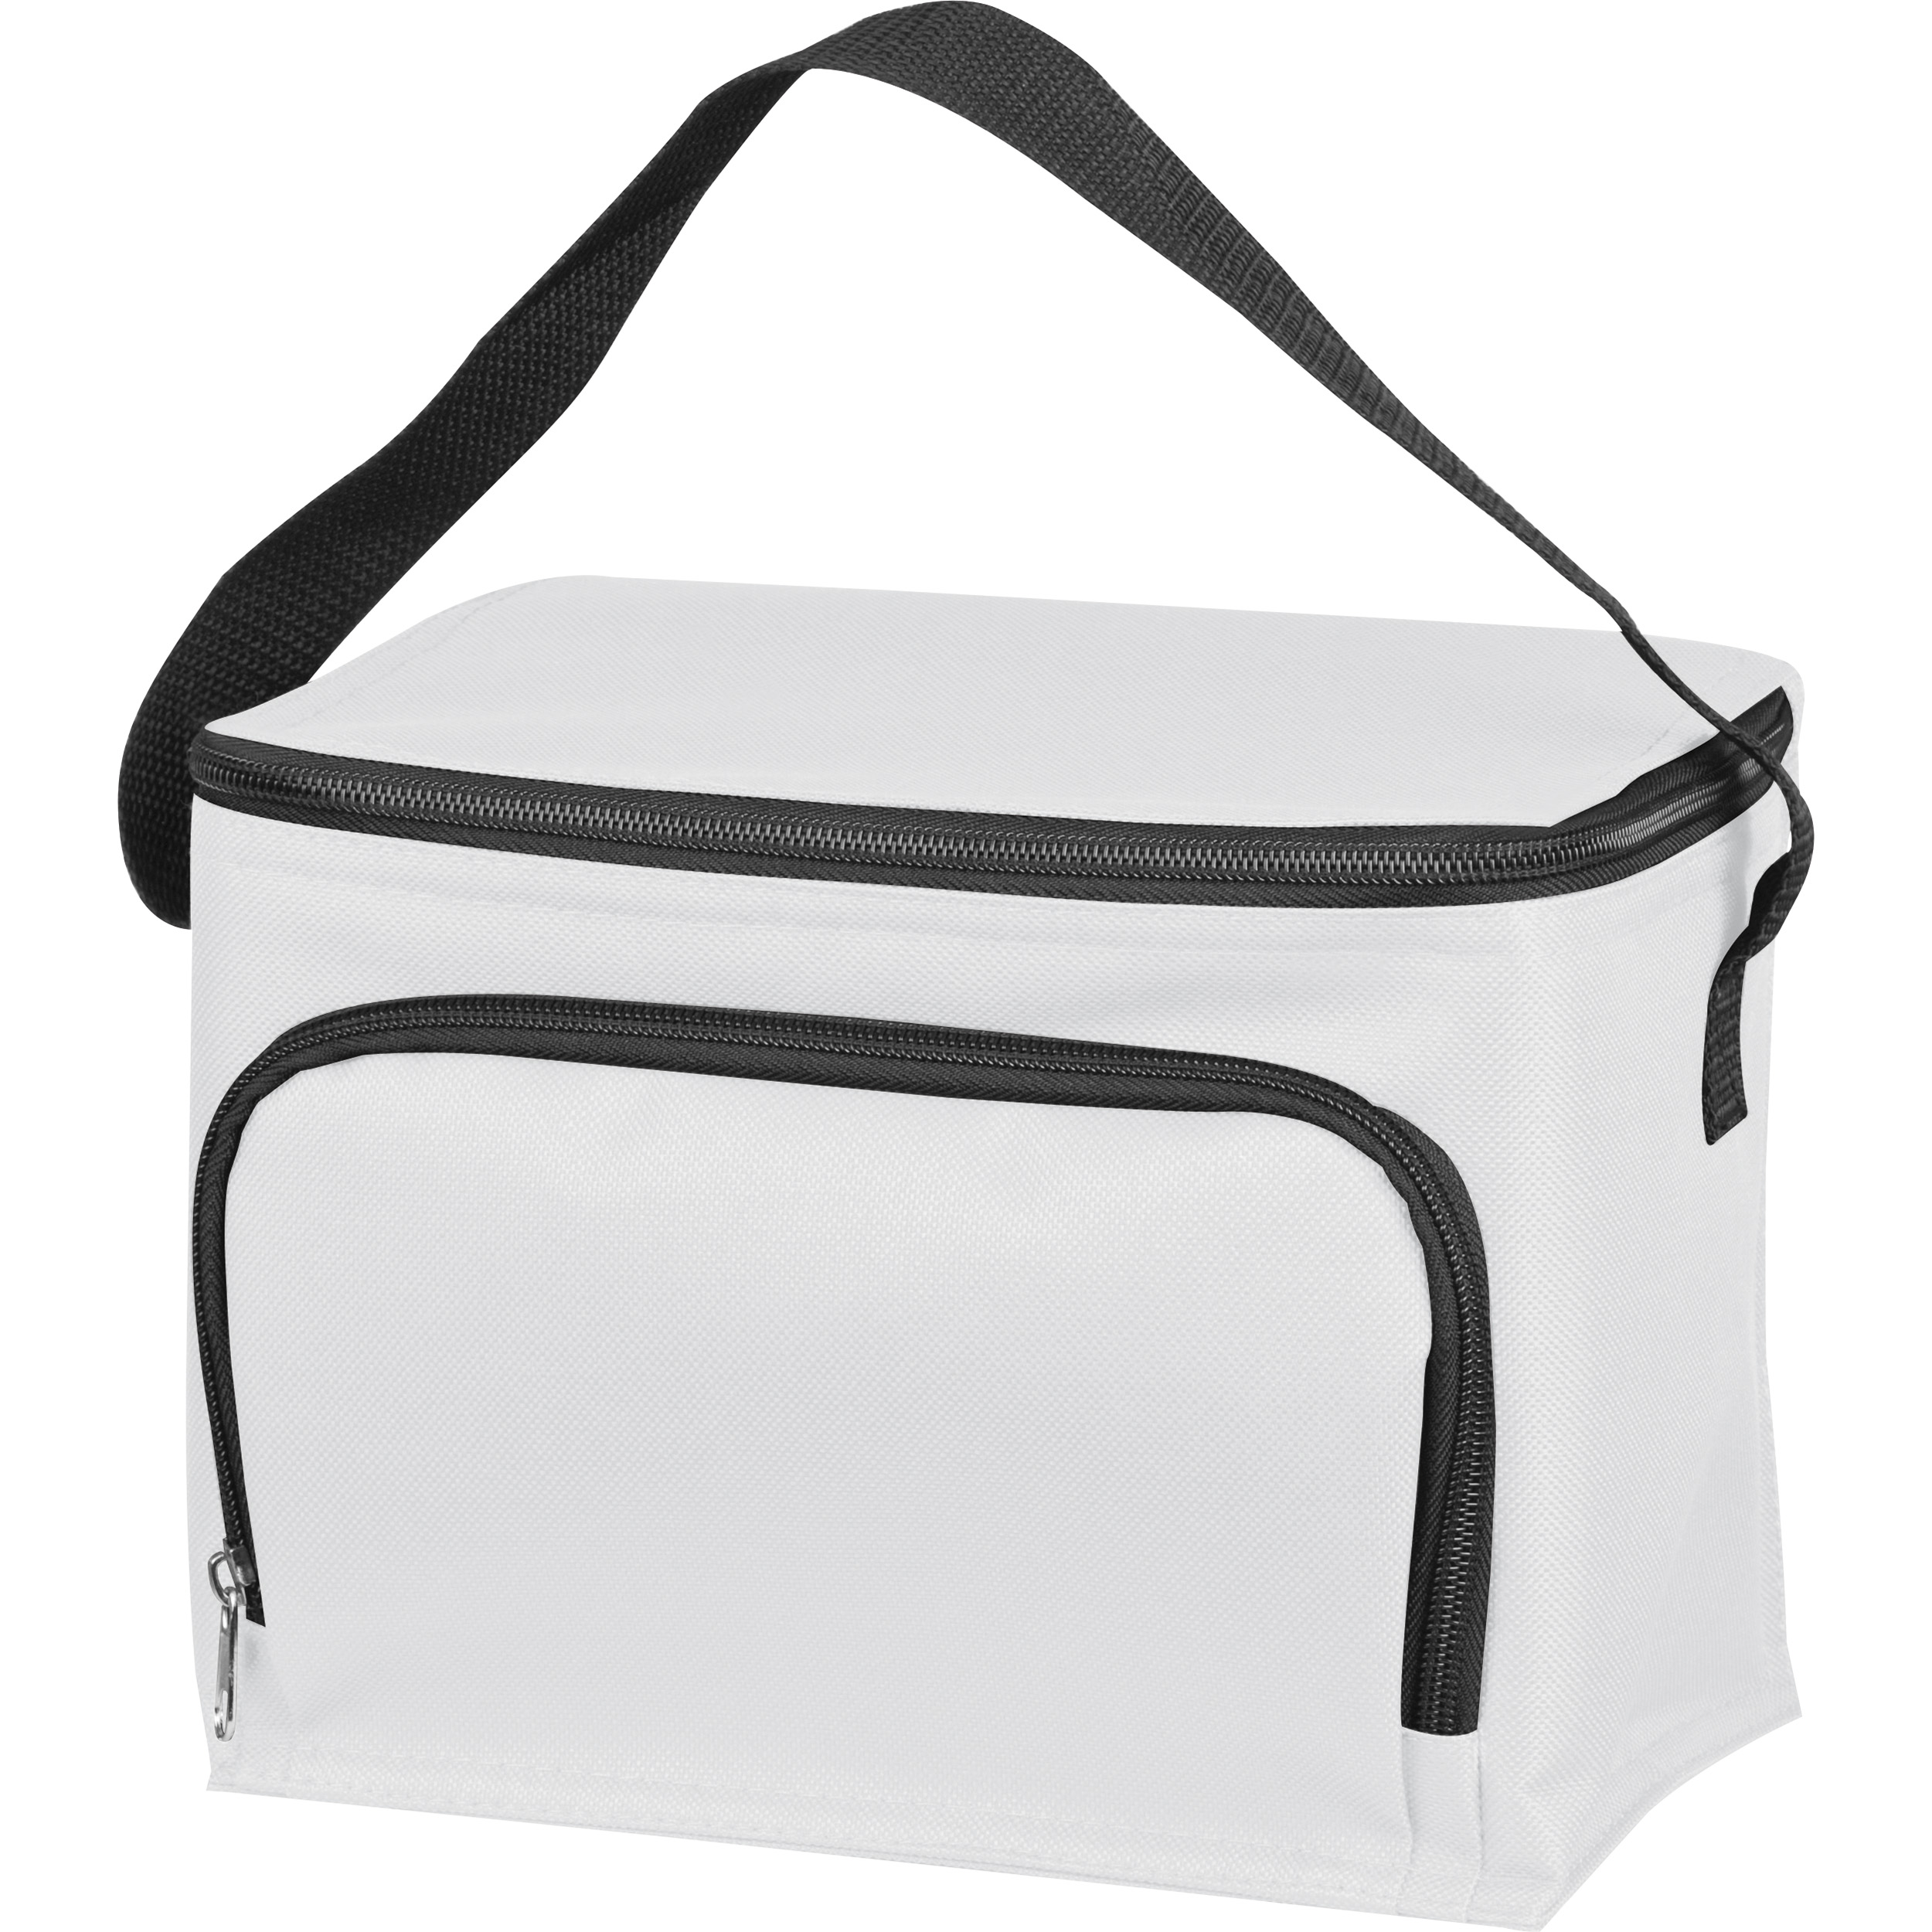 Sac isotherme polyester 210 D avec poche frontale